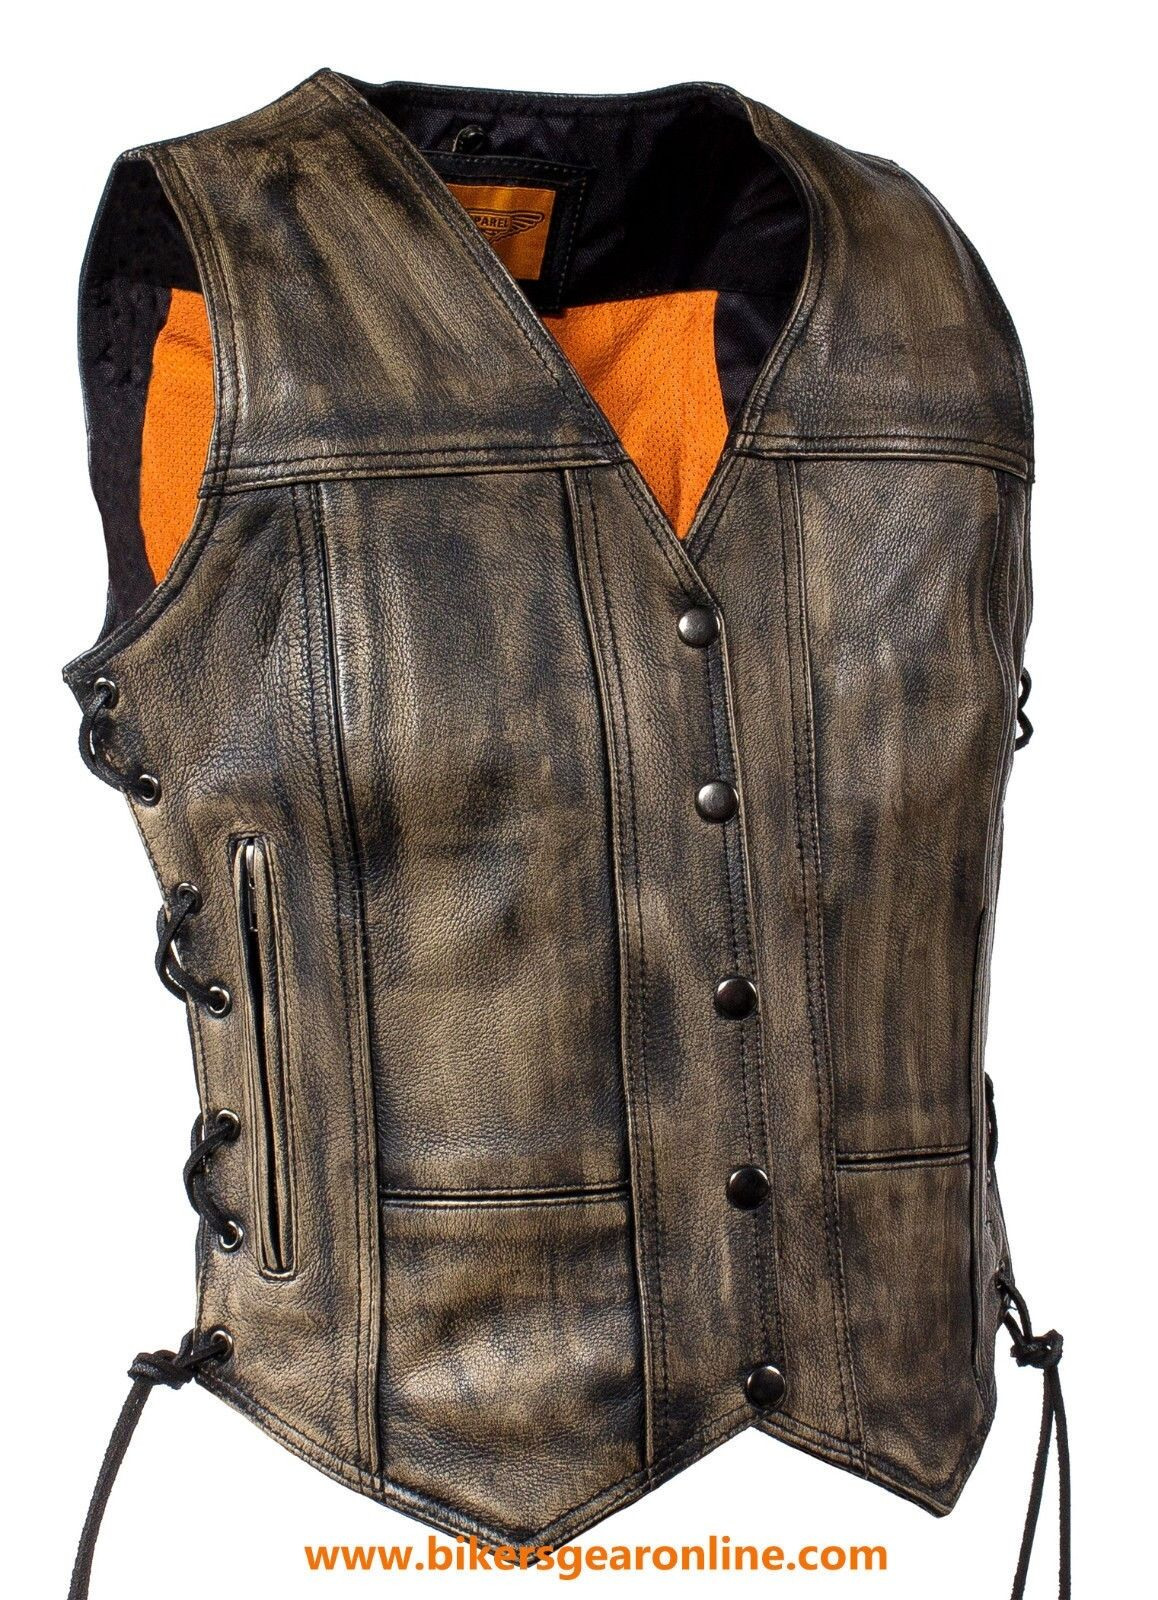 WOMEN'S MOTORCYCLE RIDERS DISTRESSED BROWN SOFT LEATHER VEST W  SIDE LACES NEW